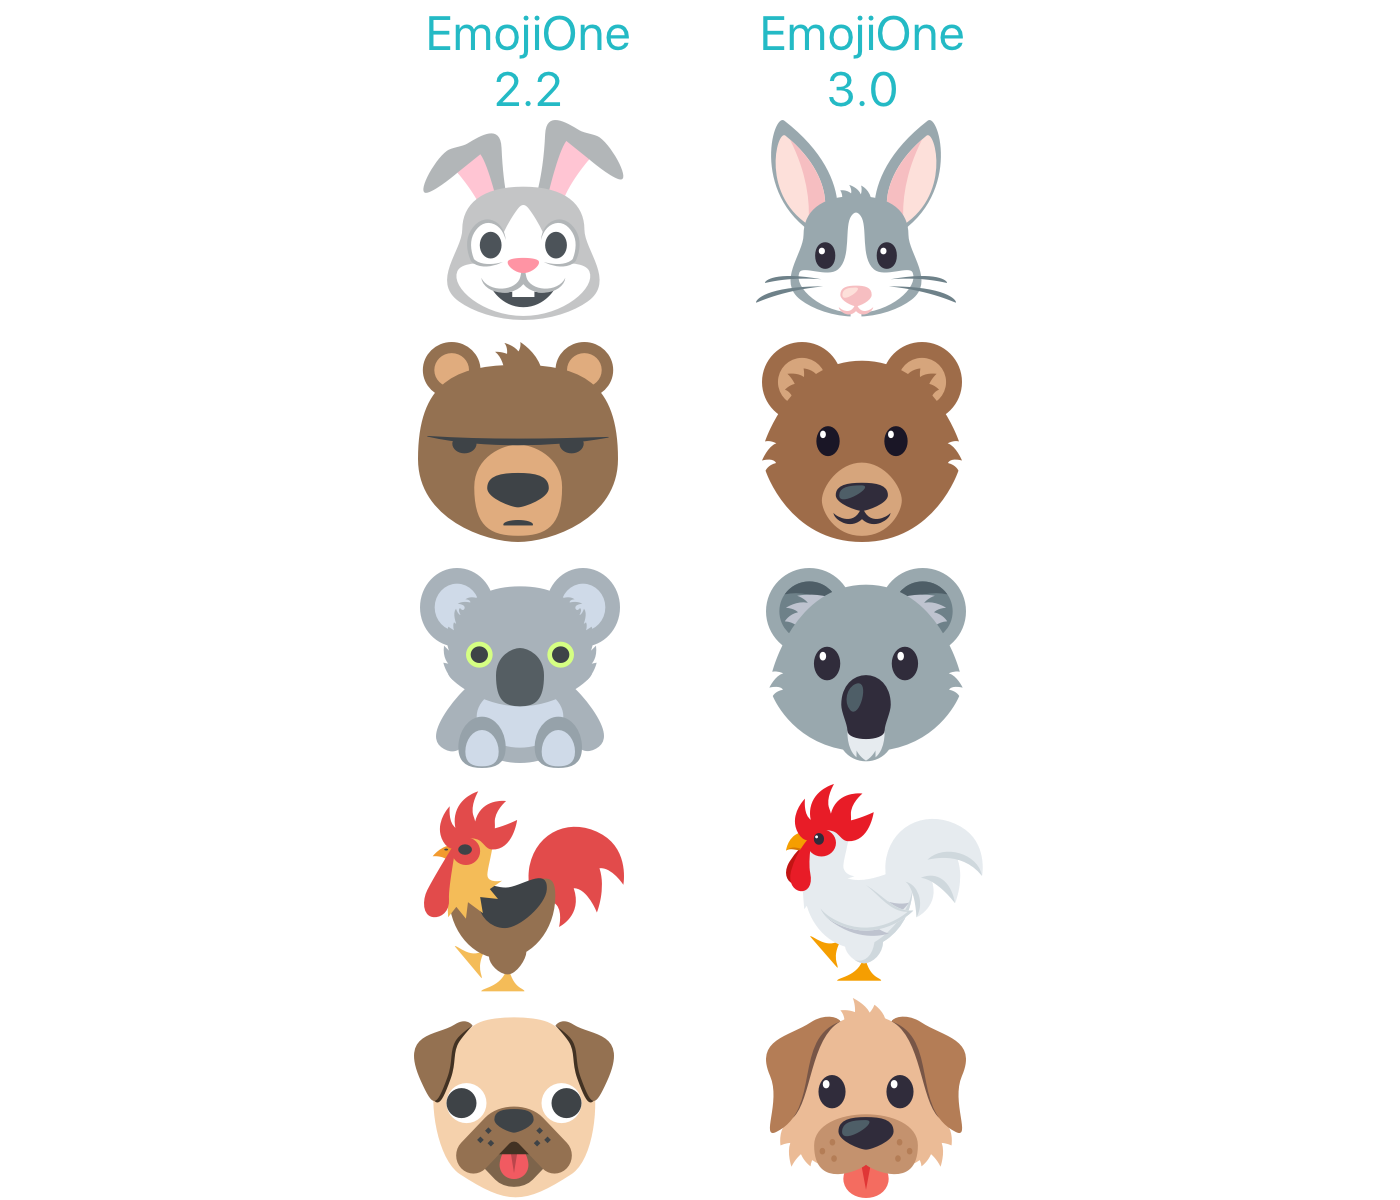 Introducing emojione v30 emojione blog rabbit bear koala rooster and dog face shown here biocorpaavc Gallery